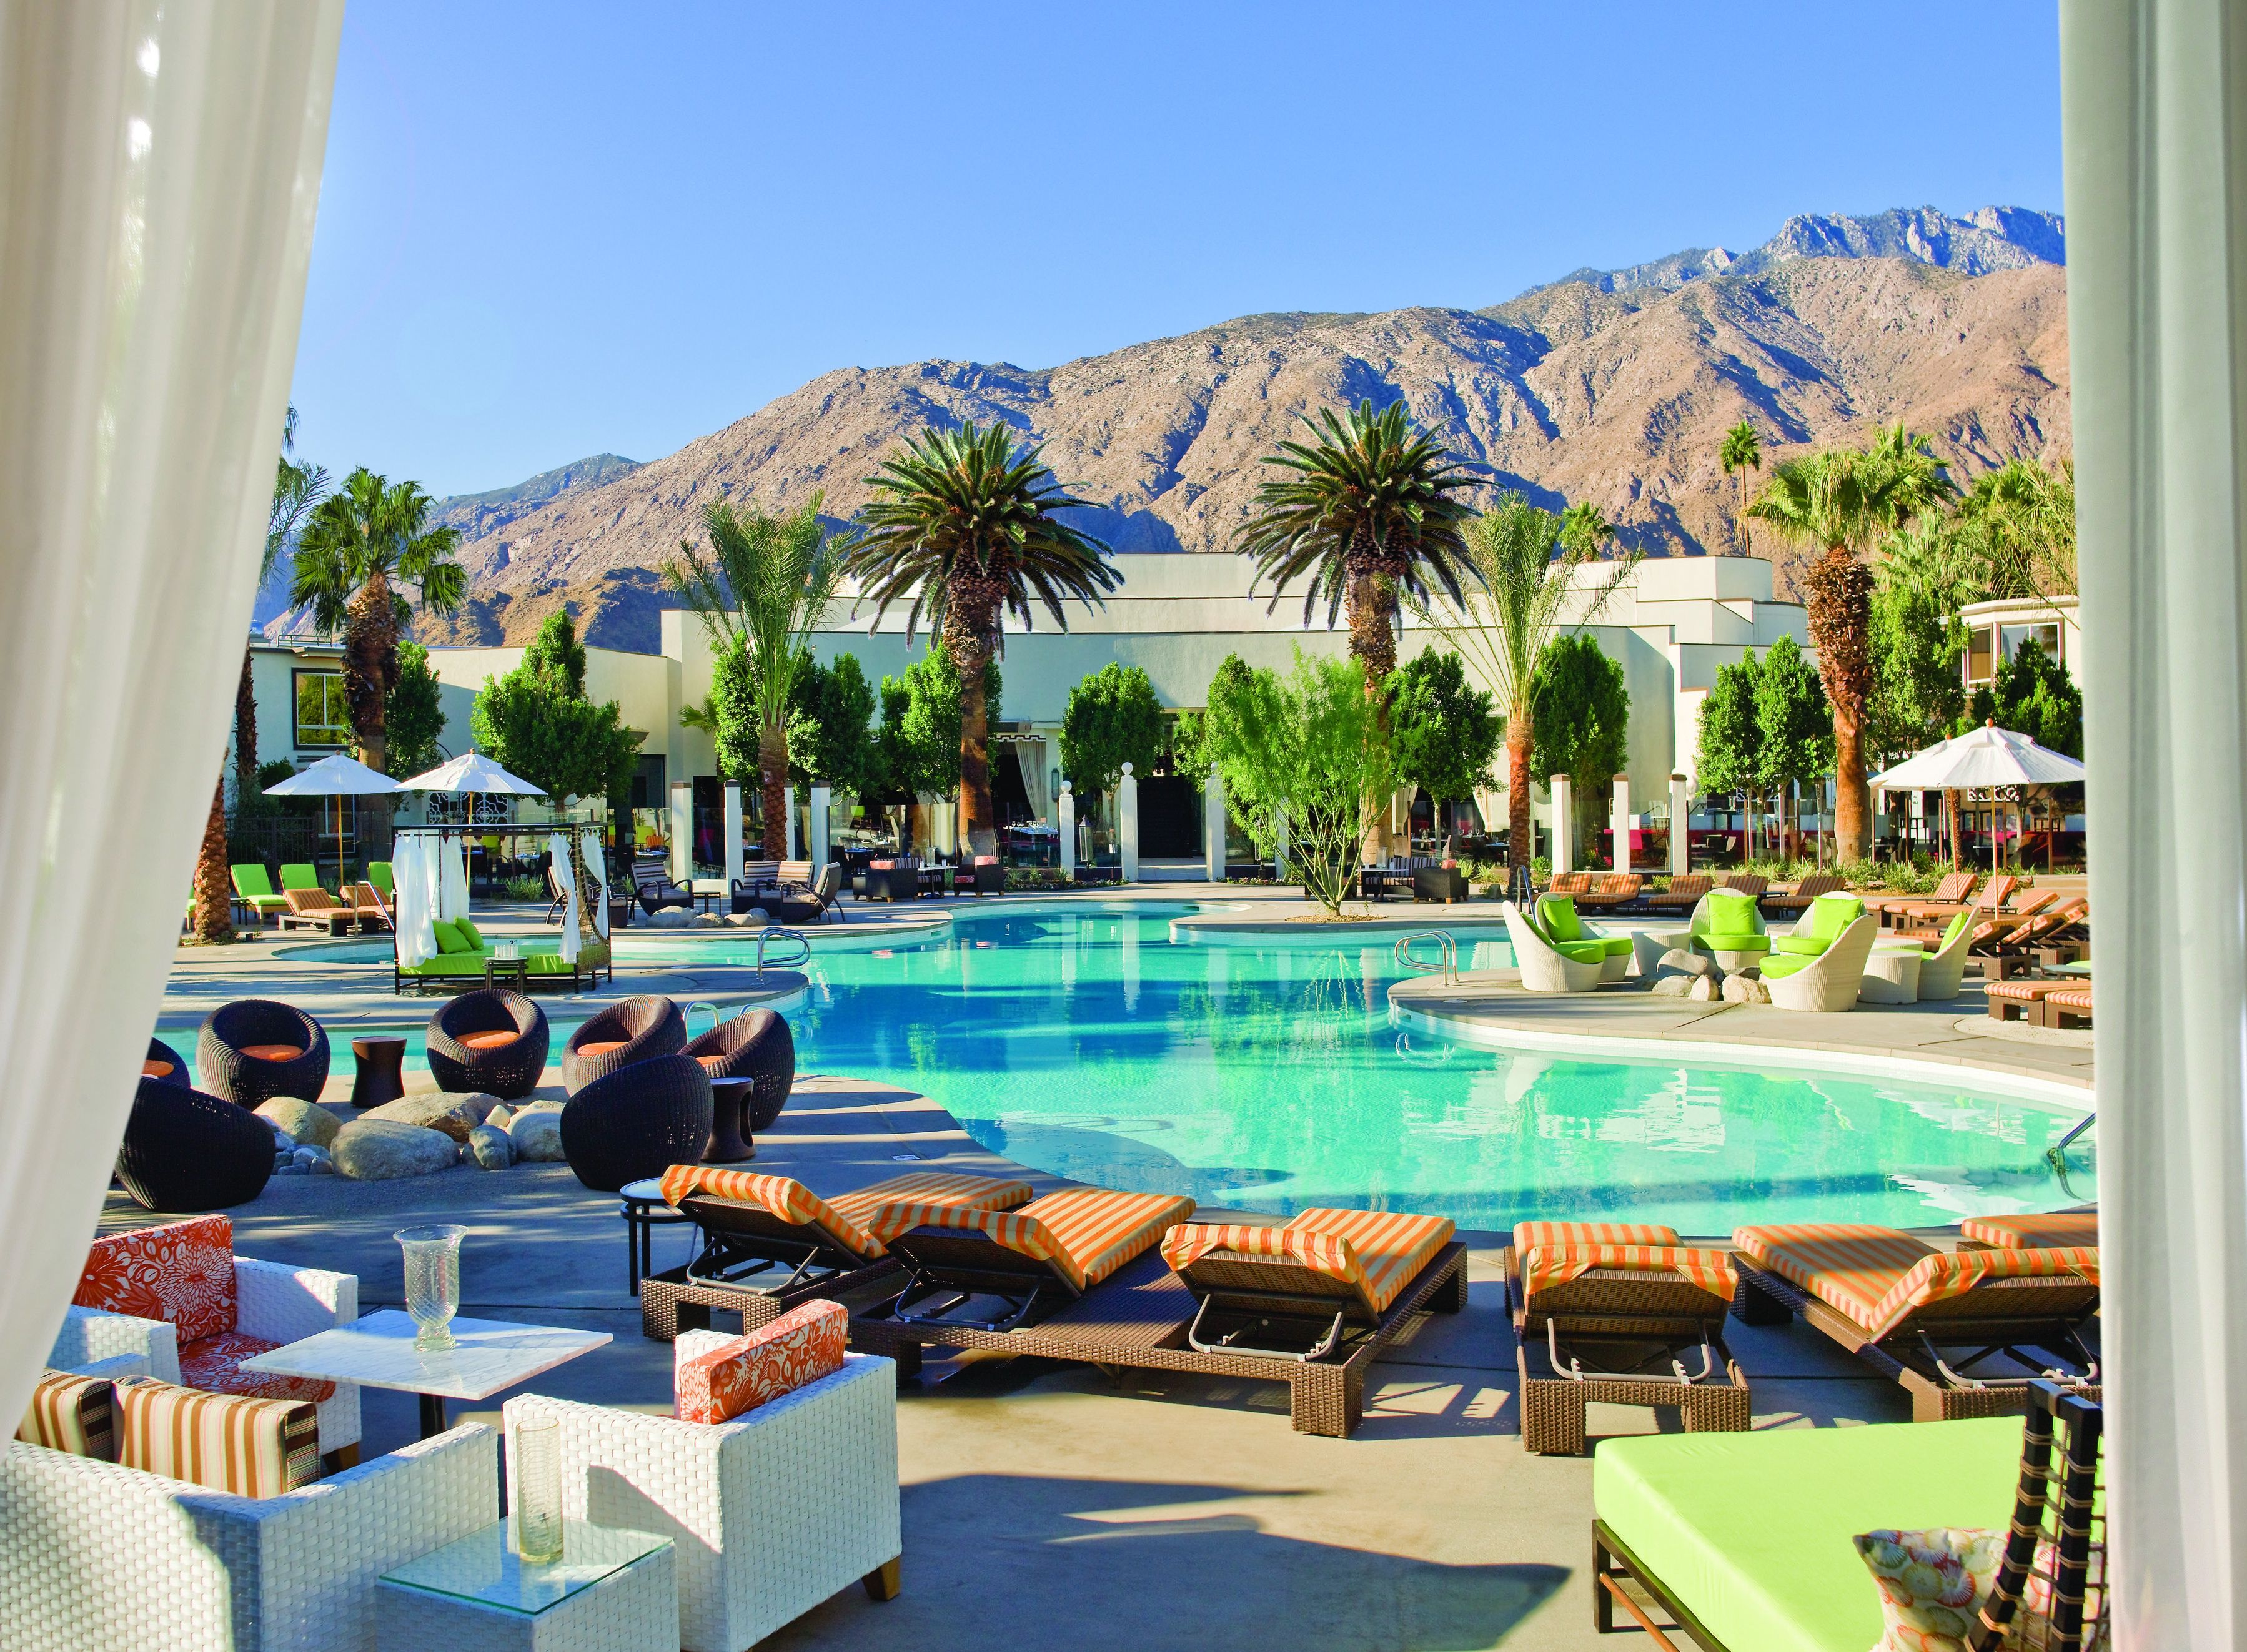 Palm Canyon Vacation Travel Travel Club Timeshare Vacation